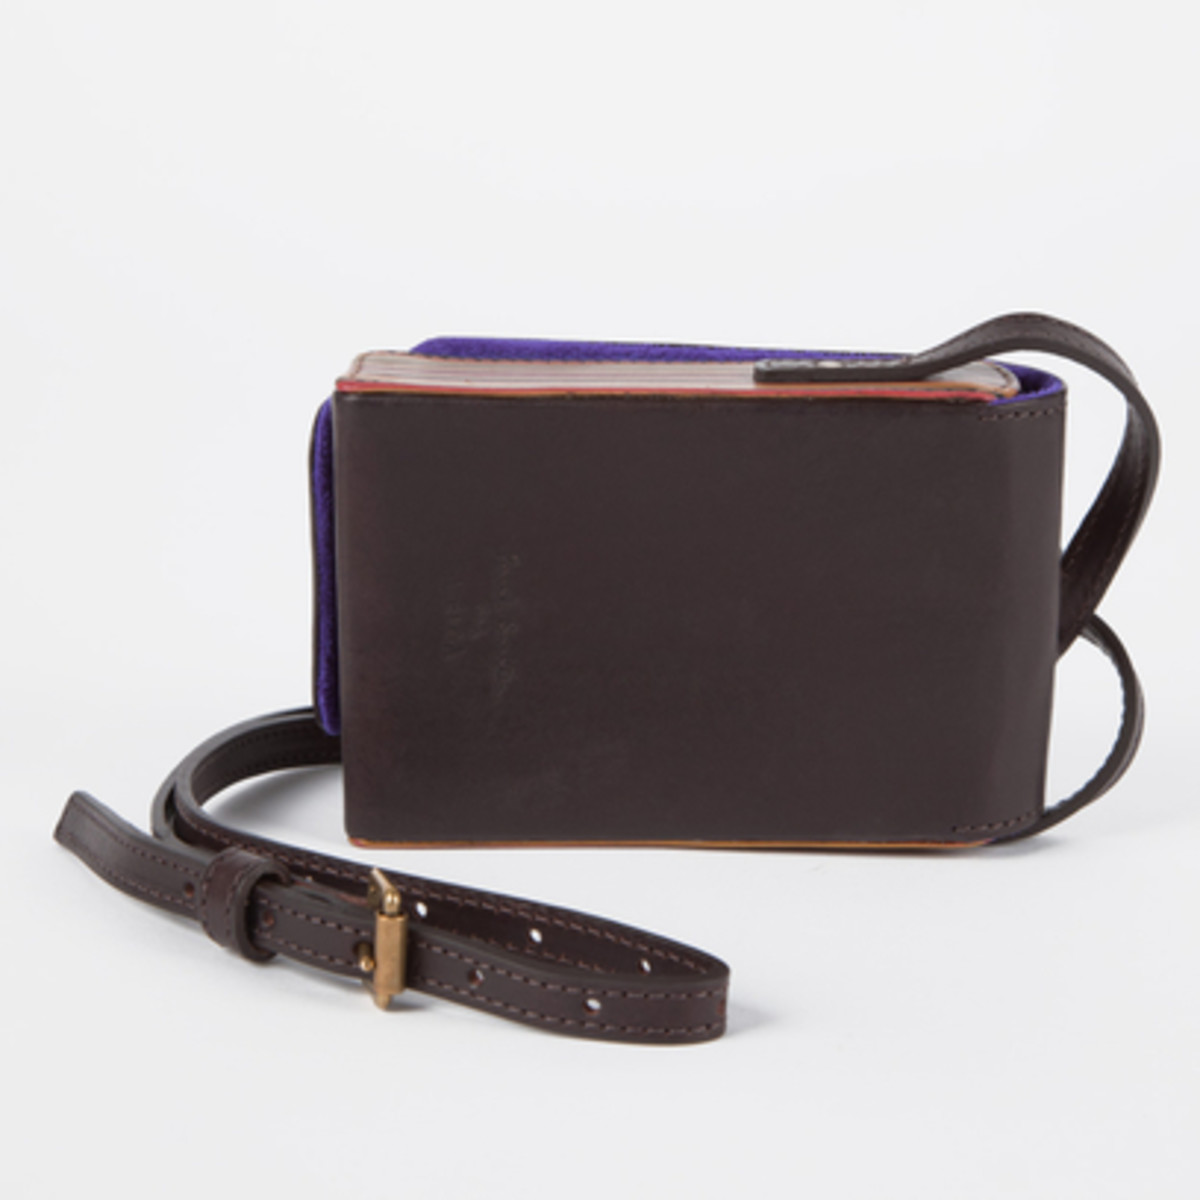 paul-smith-leica-vintage-striped-leather-camera-case-04